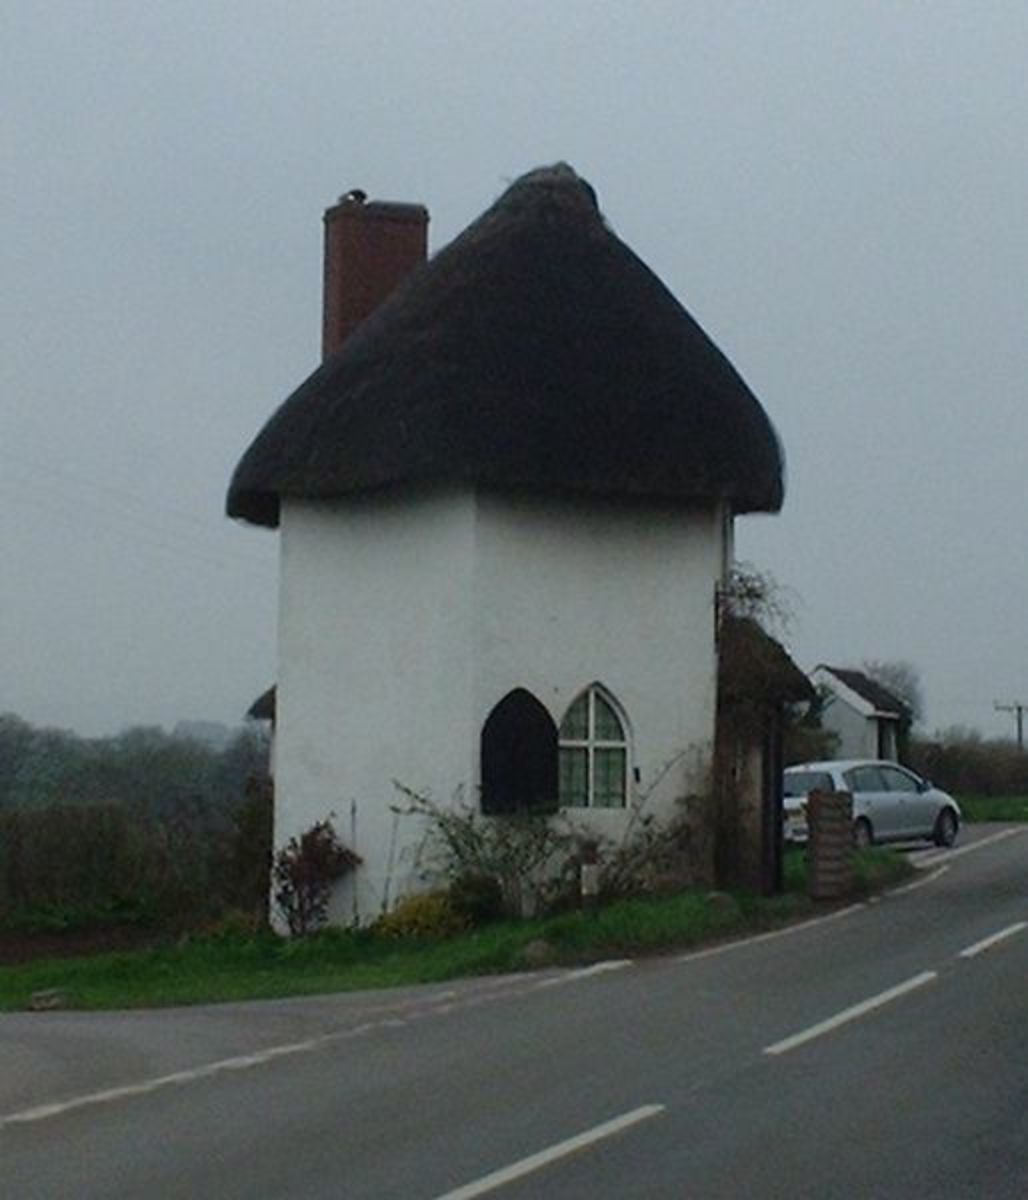 The old toll house at Stanton Drew, just outside Bristol